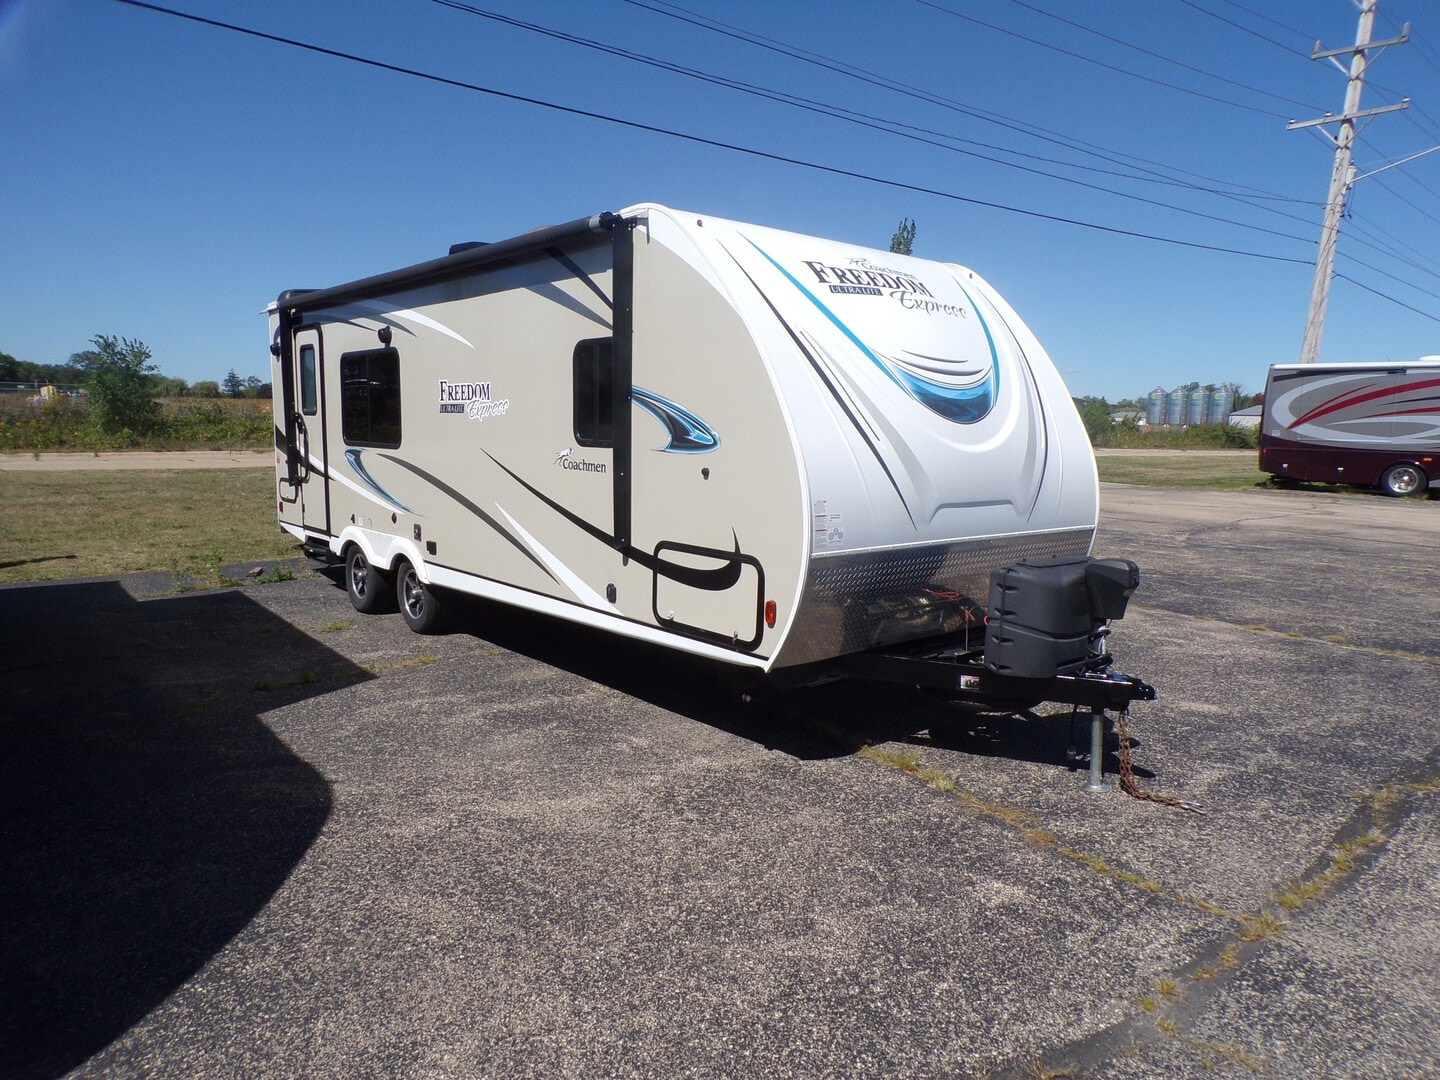 Used, 2018, Freedom Express Ultra-Lite, 246RKS, Travel Trailers